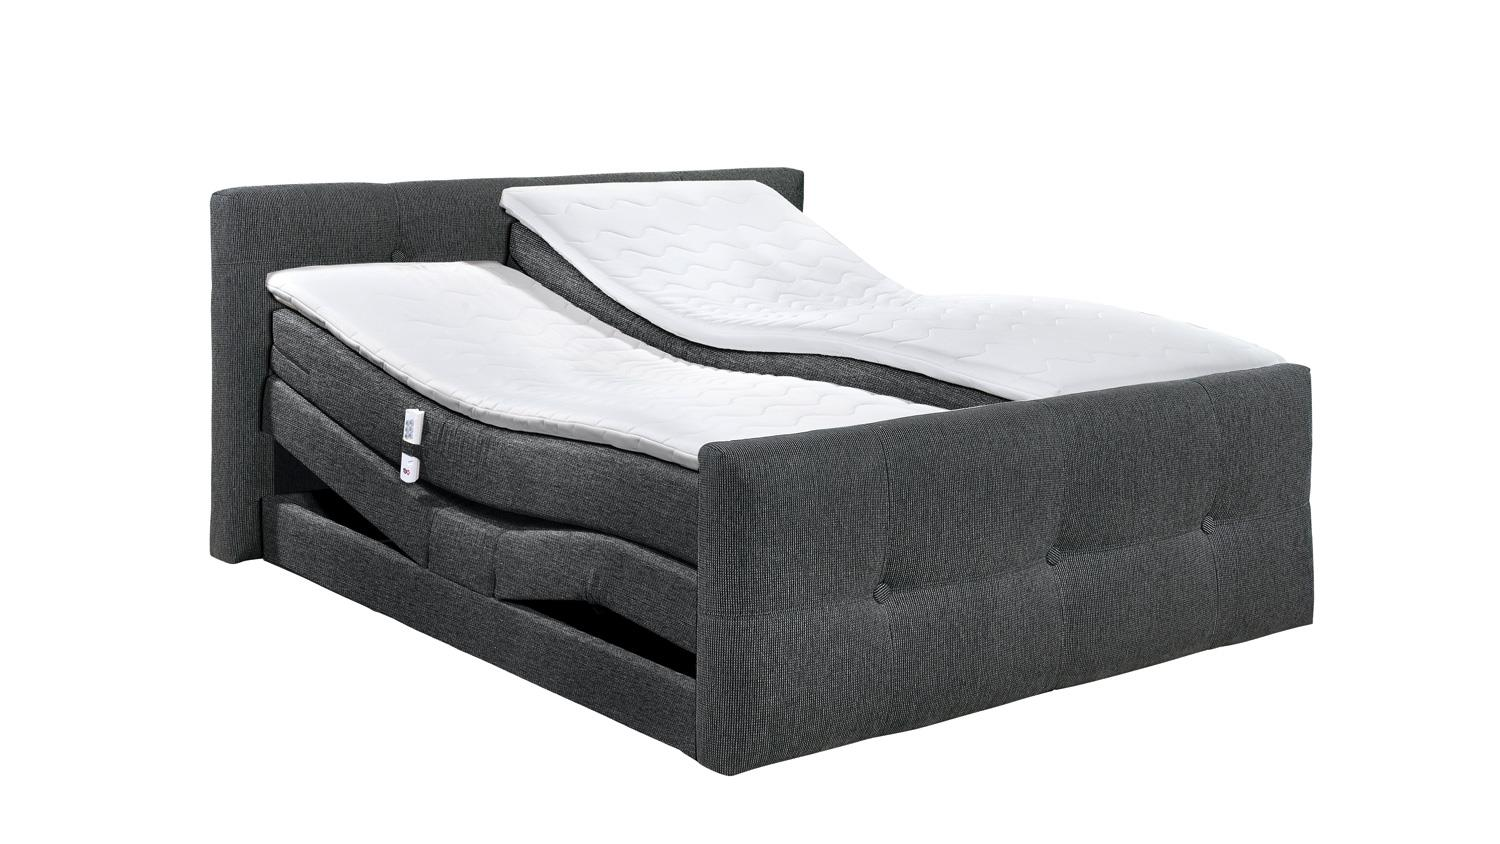 boxspringbett illinois d3 lawa grau topper mit motor 180x200. Black Bedroom Furniture Sets. Home Design Ideas